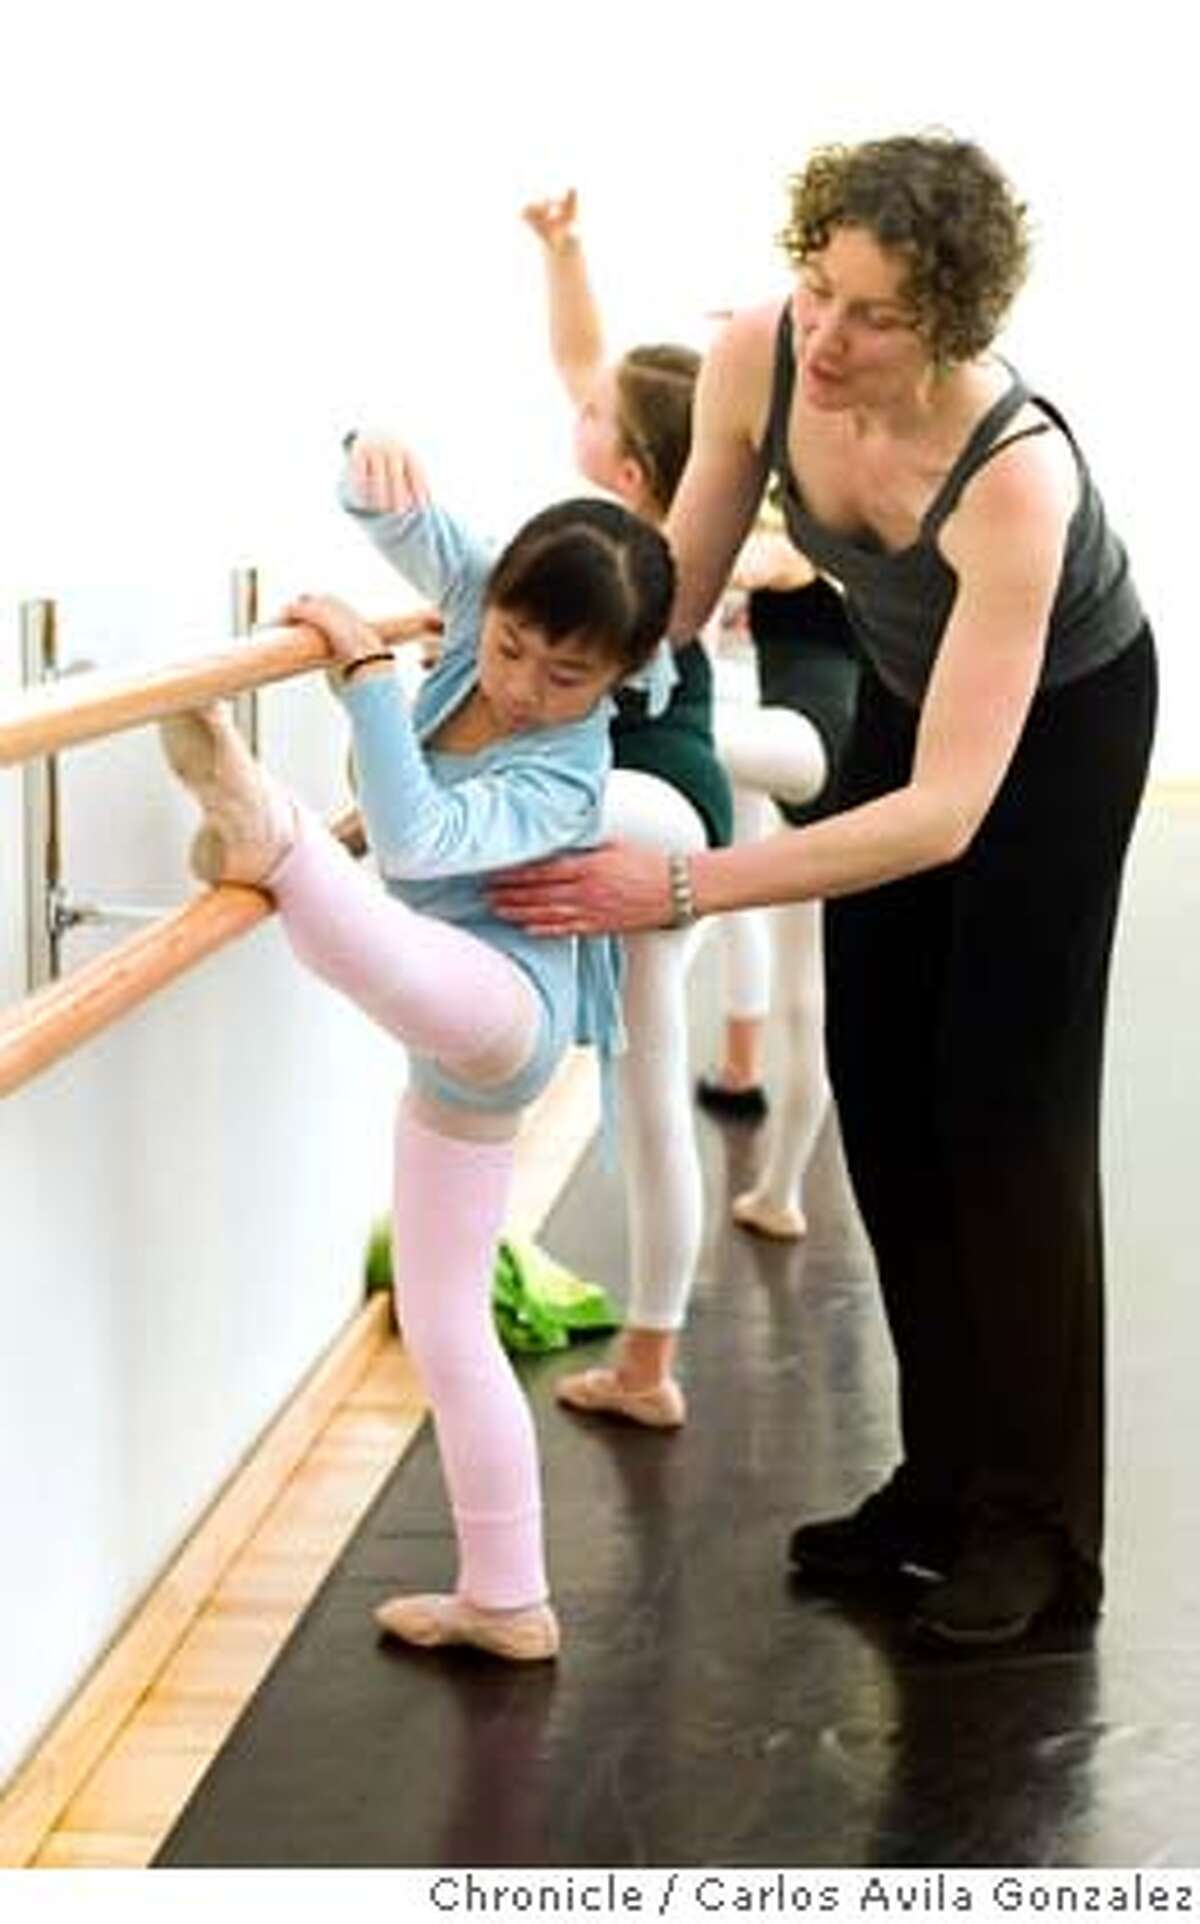 ODC_003_CAG.JPG Dance teacher, Augusta Moore, instructs Mia Chong during class at the new ODC dance class studio on Thursday, January 12, 2006. A look at ODC's new dance school in San Francisco, Ca. Photo by Carlos Avila Gonzalez/The San Francisco Chronicle Photo taken on 01/12/06, in San Francisco, Ca. MANDATORY CREDIT FOR PHOTOG AND SAN FRANCISCO CHRONICLE/ -MAGS OUT